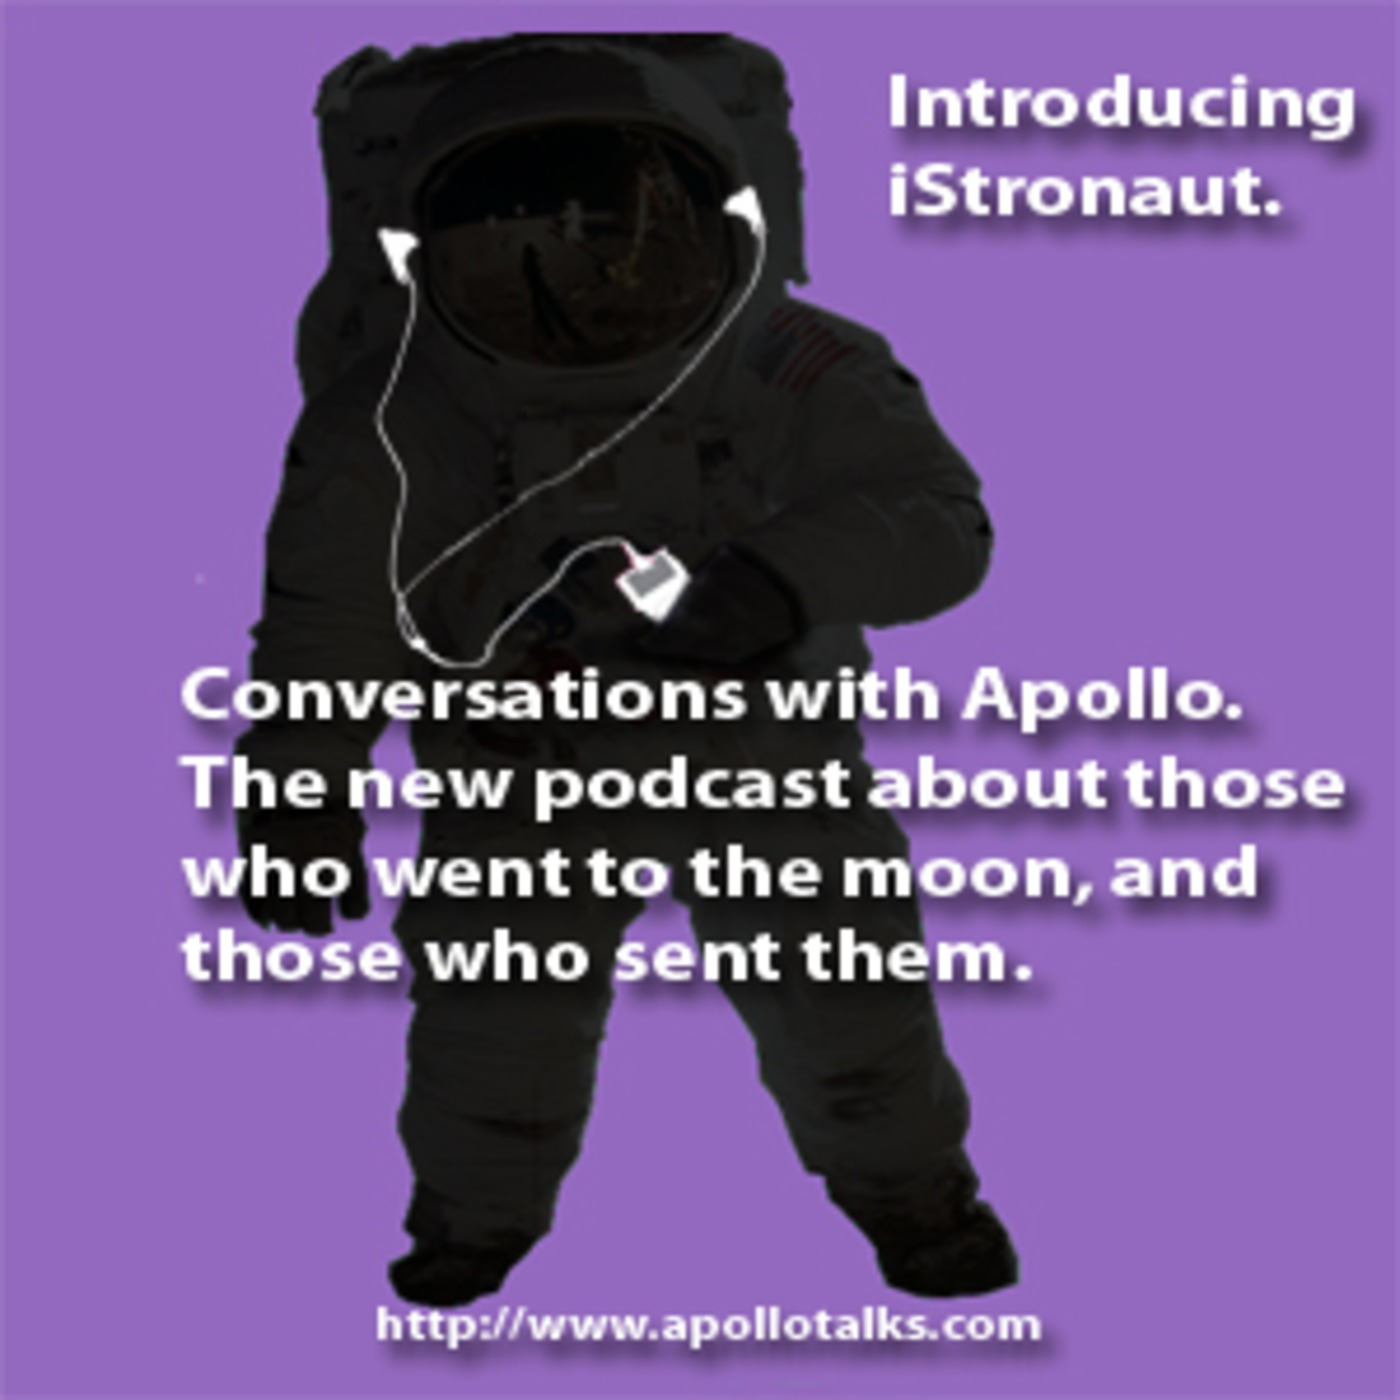 Conversations with Apollo